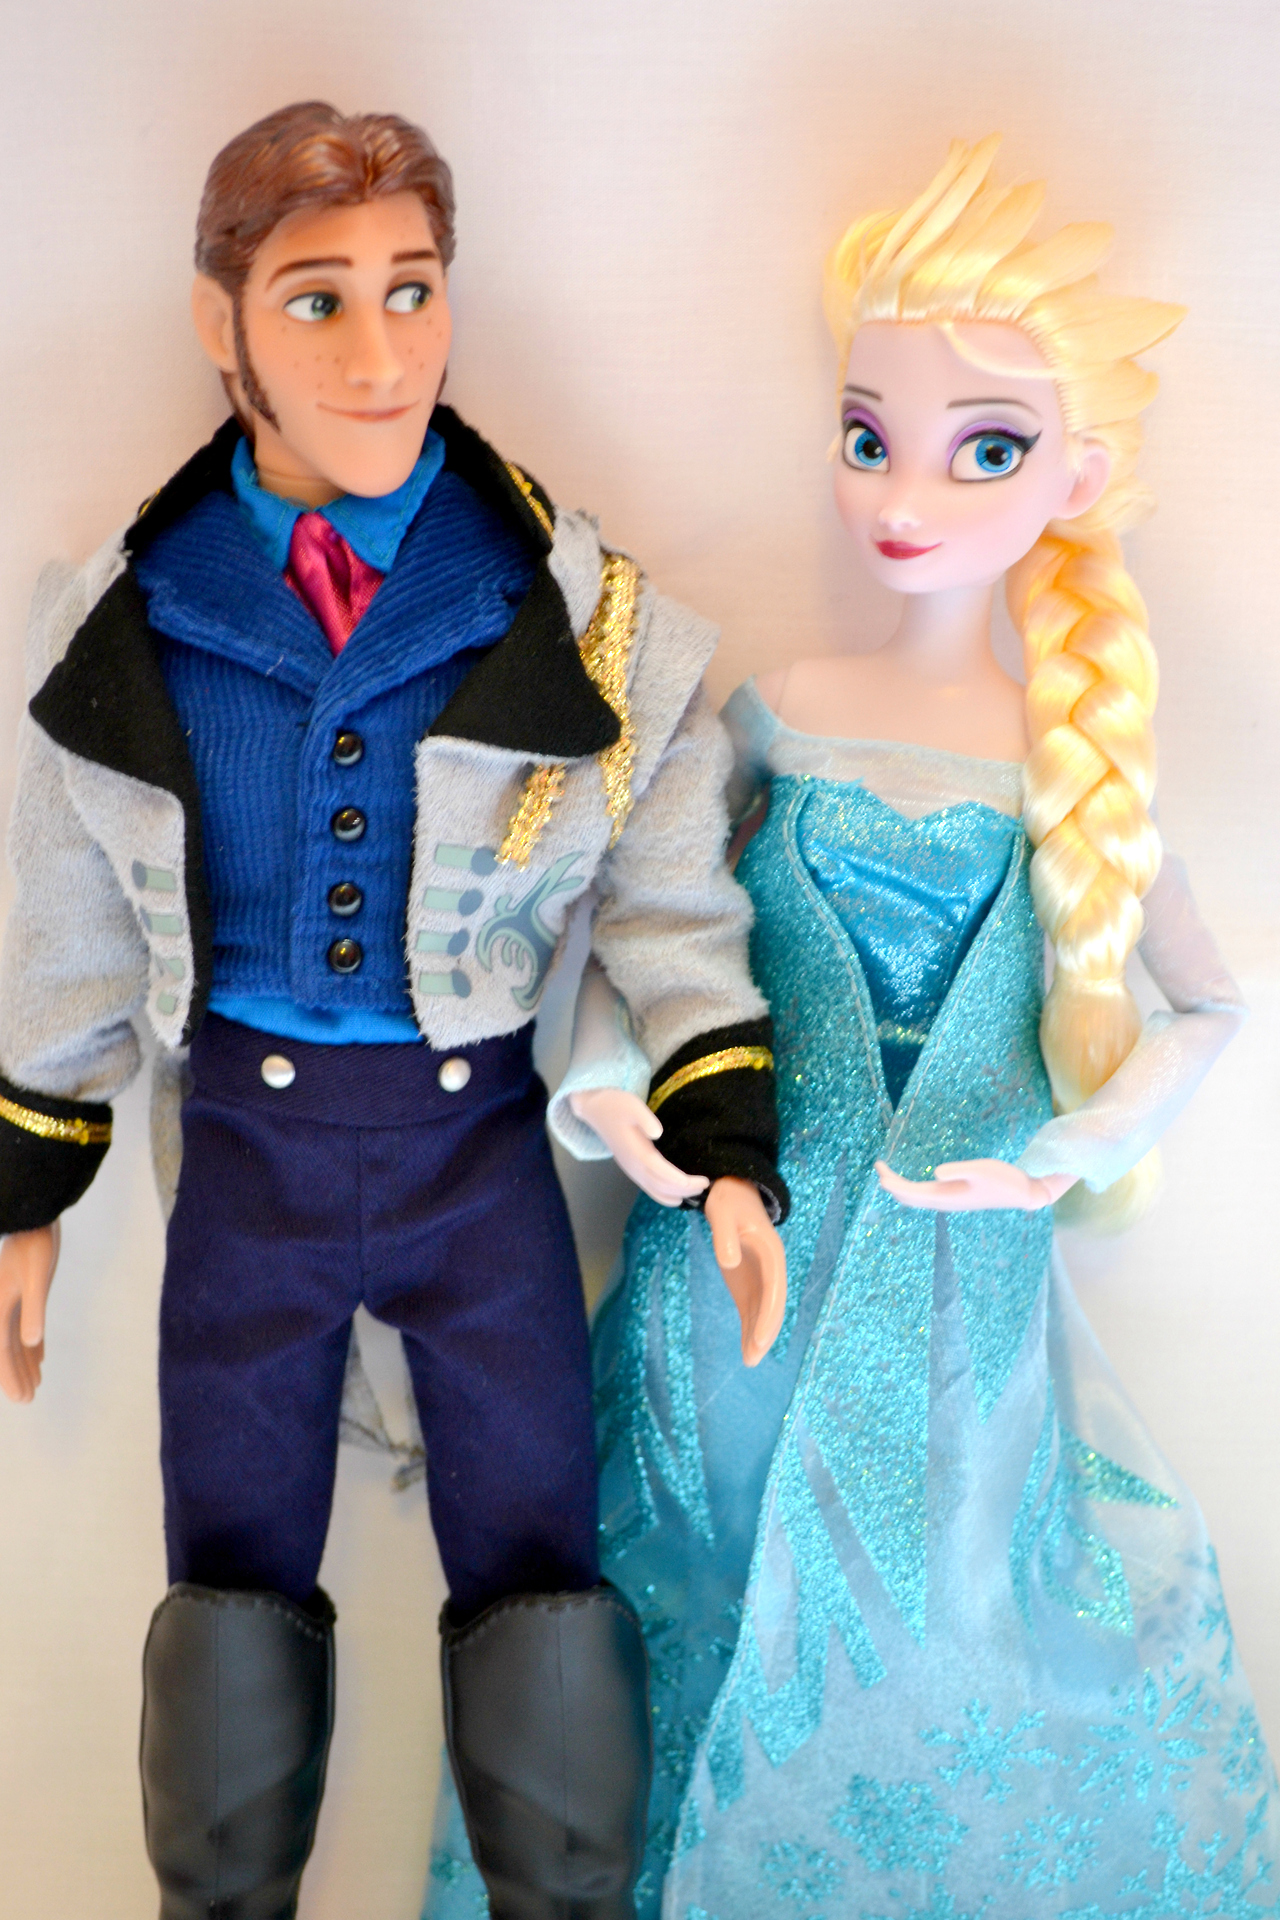 Hans and Elsa boneka